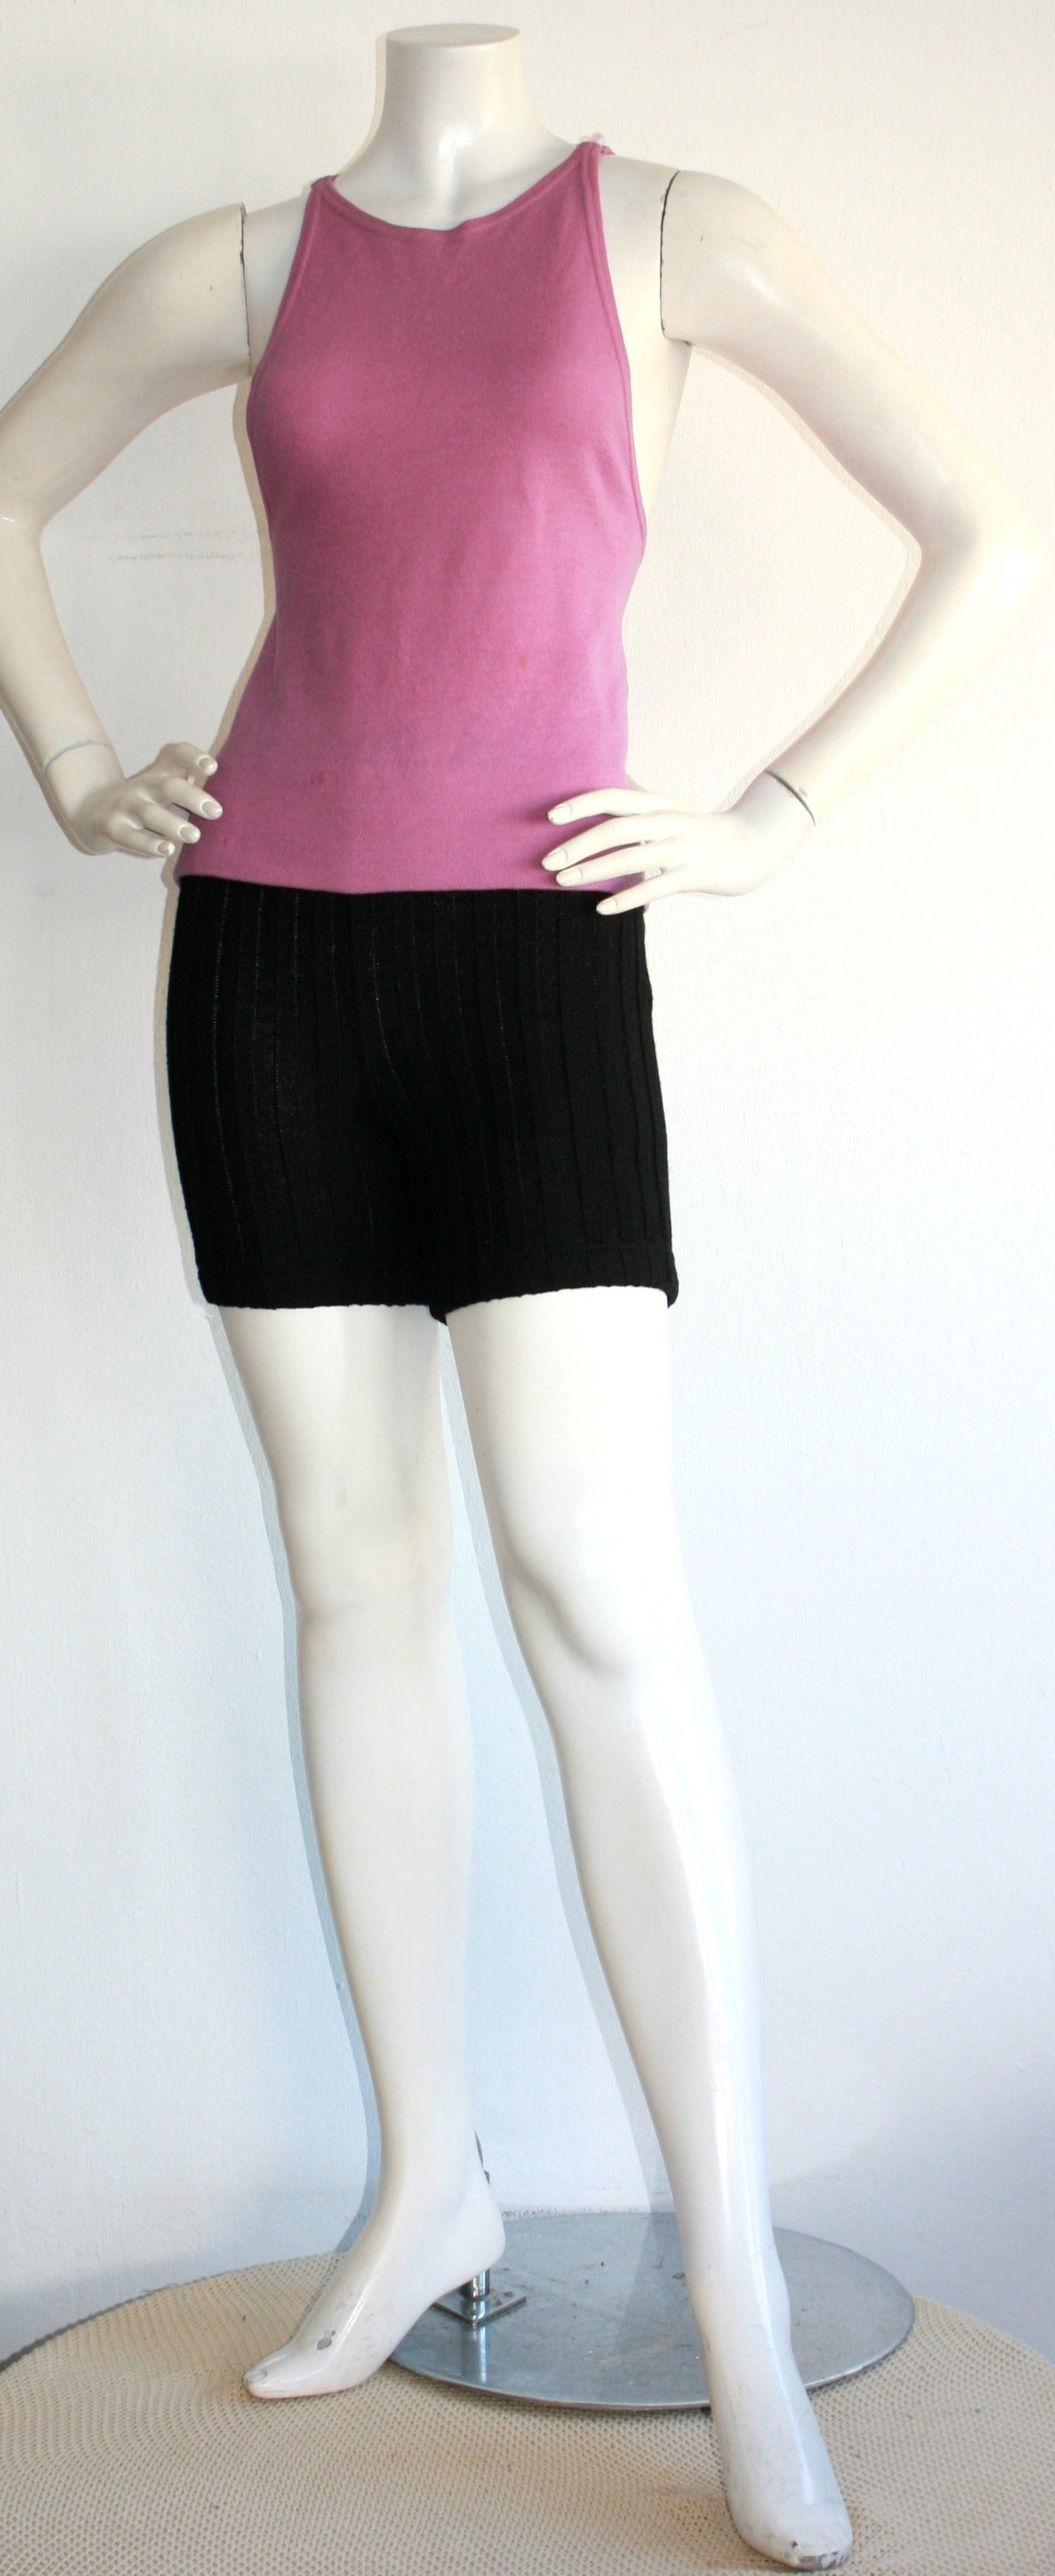 Iconic 1960s Rudi Gernreich For Harmon Knits Shorts and Top Ensemble 4